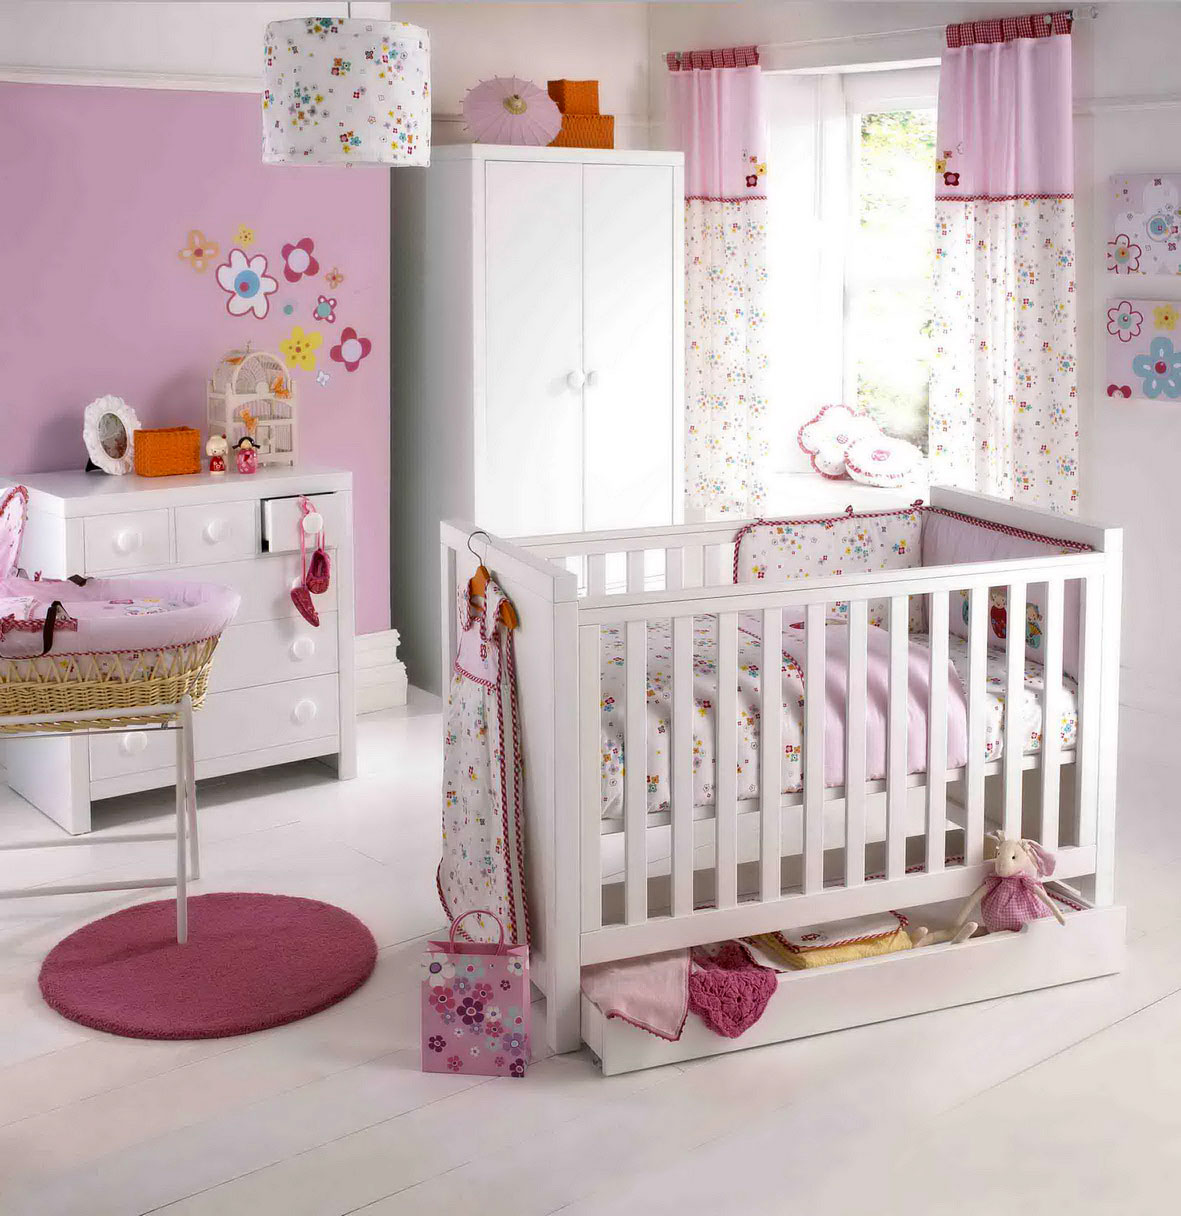 What You Should Look For While Designing Your Baby 39 S Room